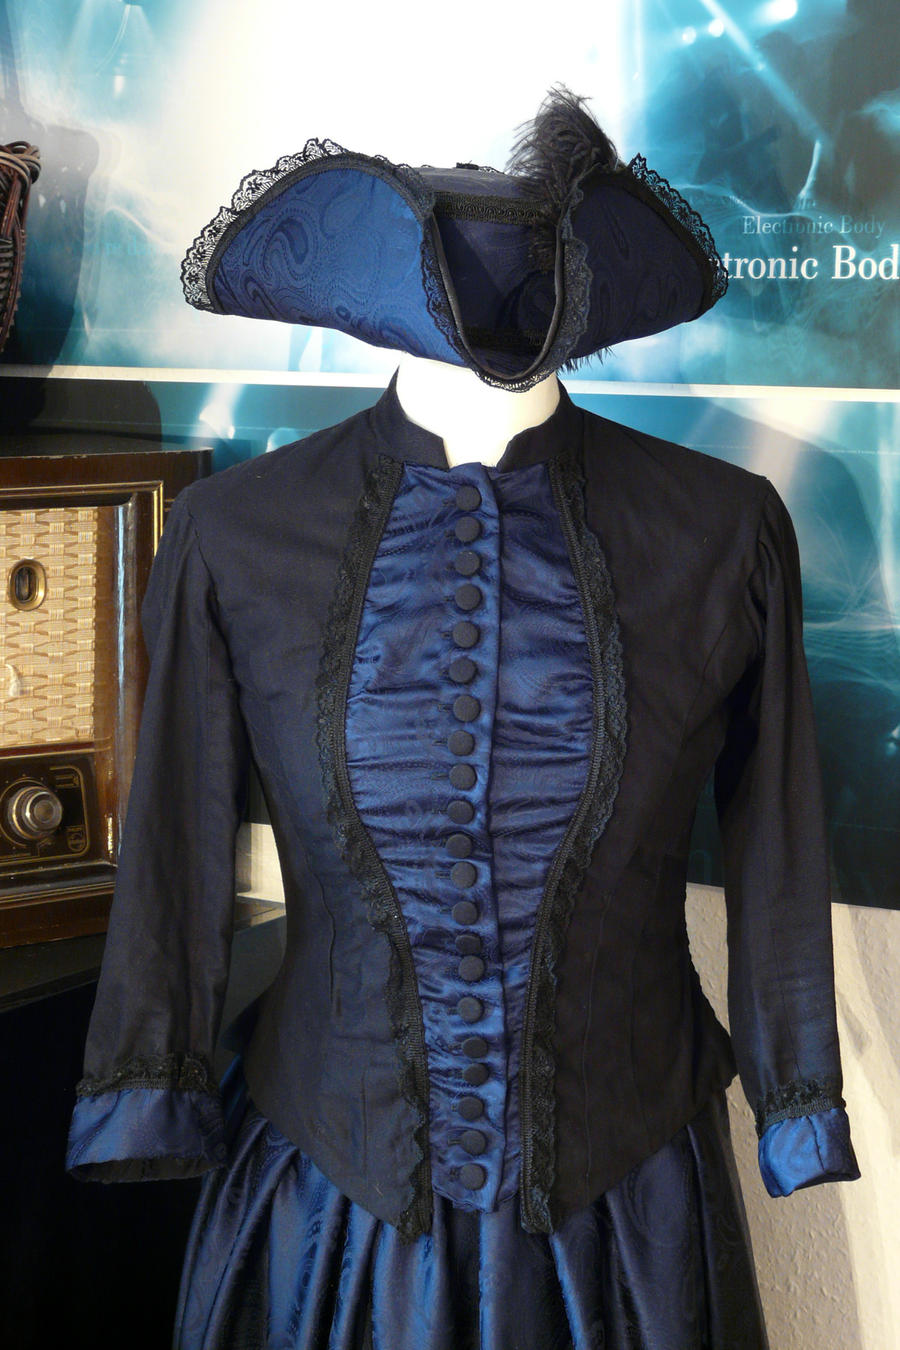 Tricorne and Victorian dress - Closeup by Eisfluegel